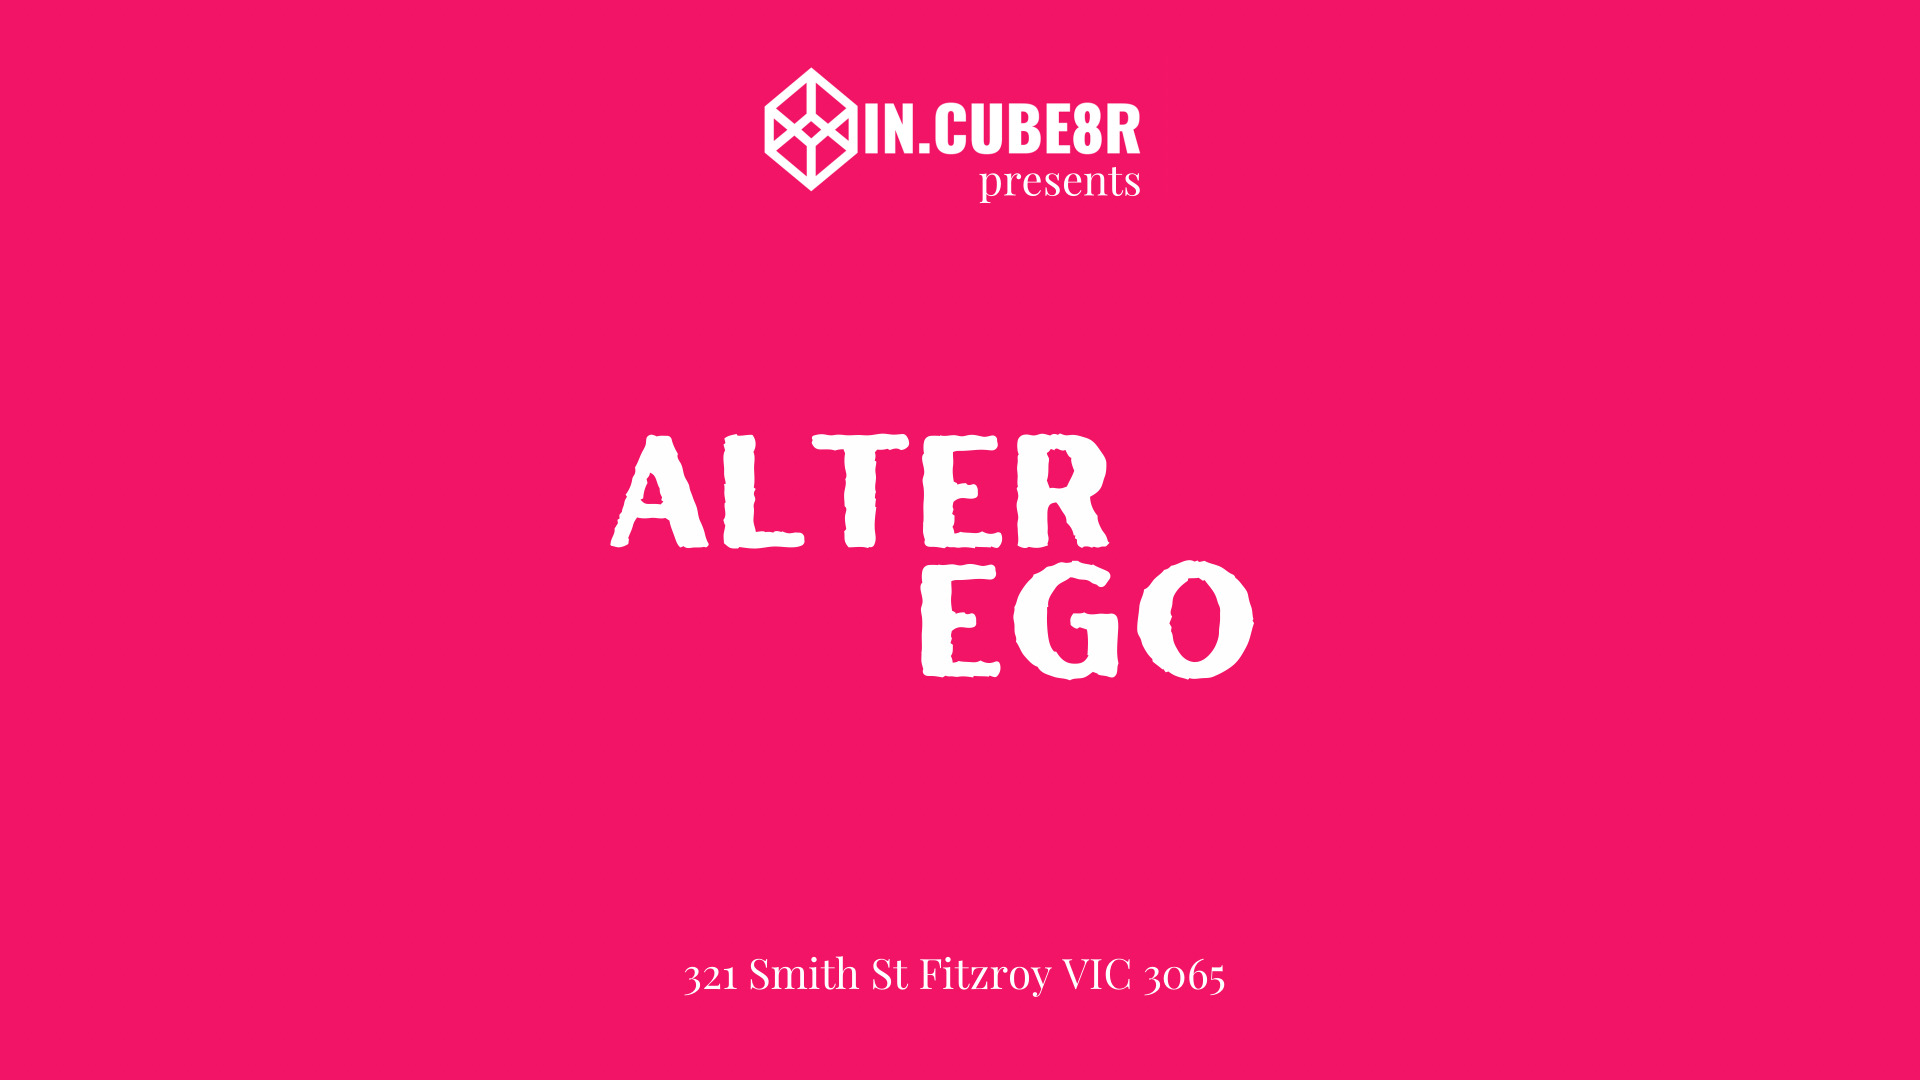 alter-ego-call-for-artists ellemay.michael 269726